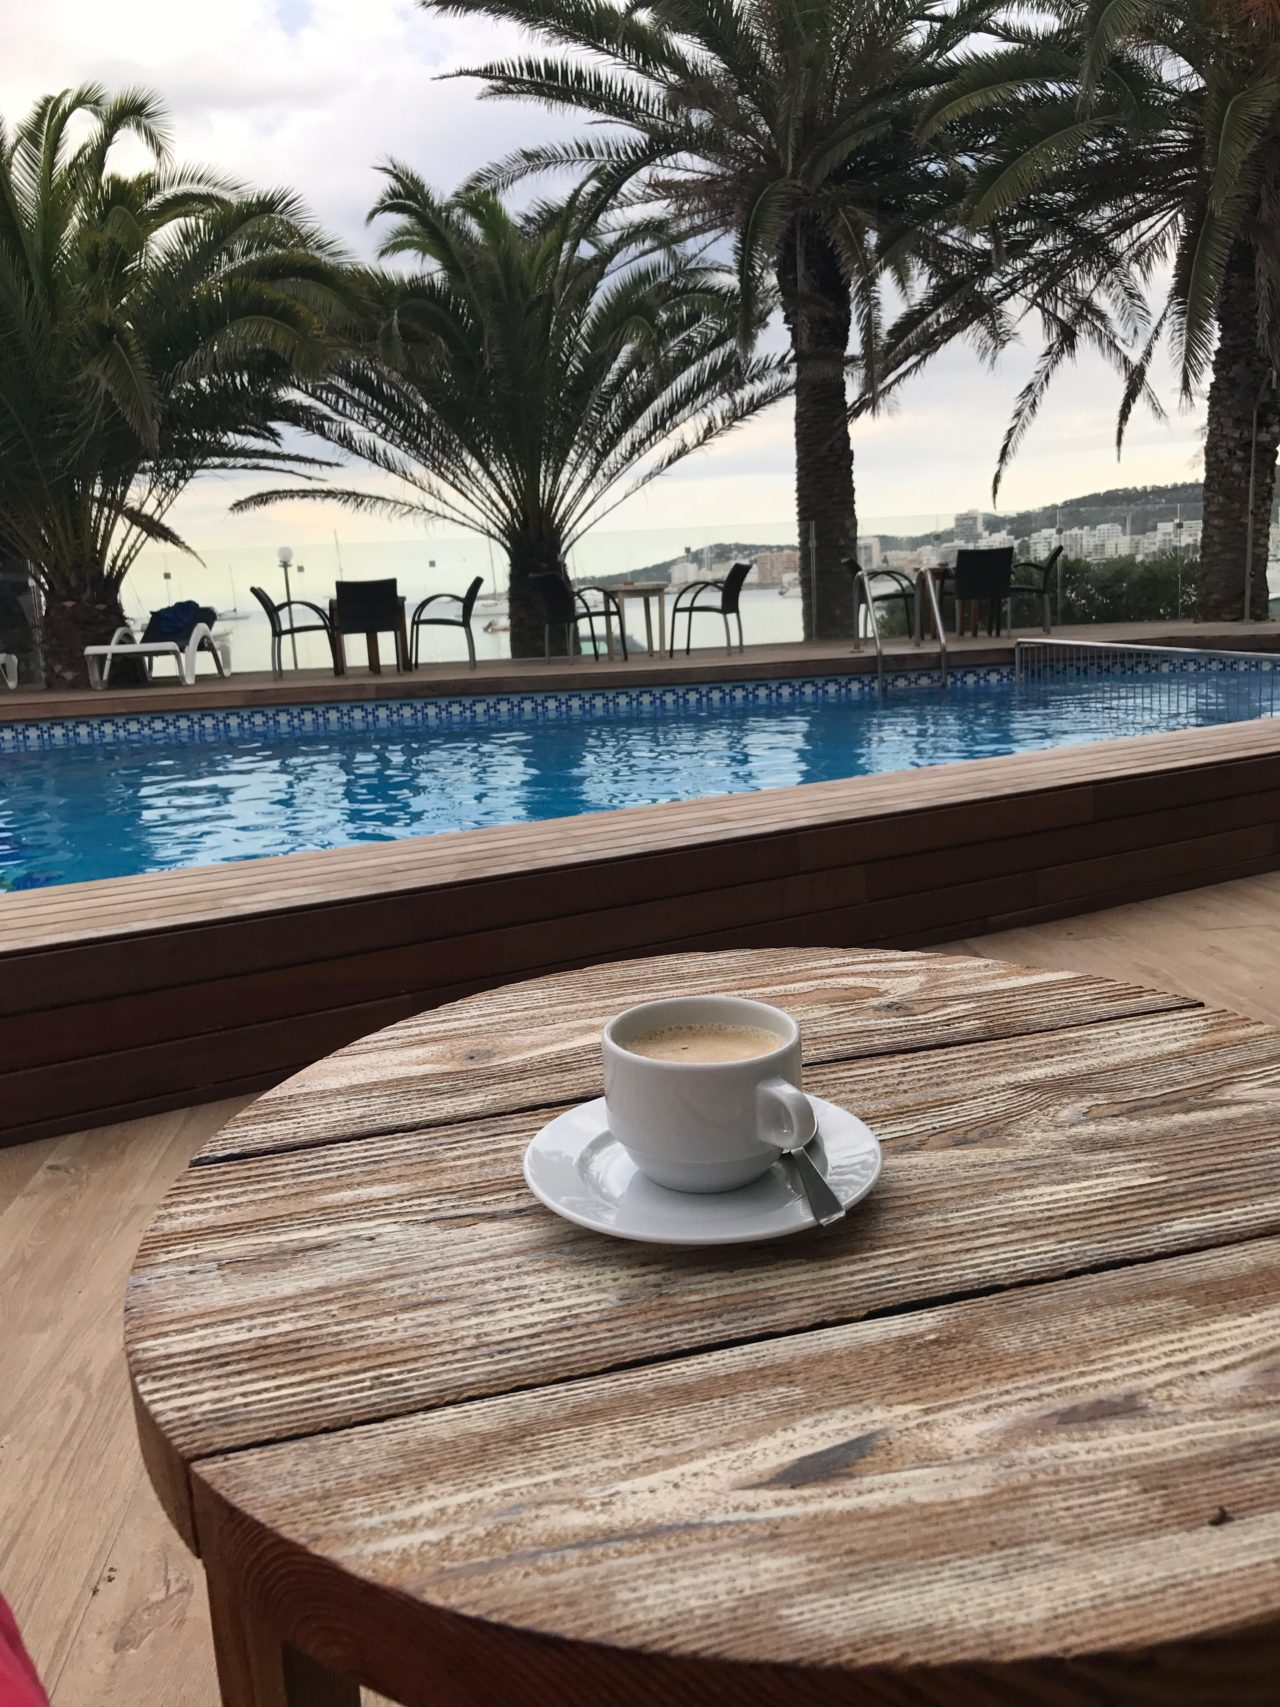 Coffee At Poolside In The Morning